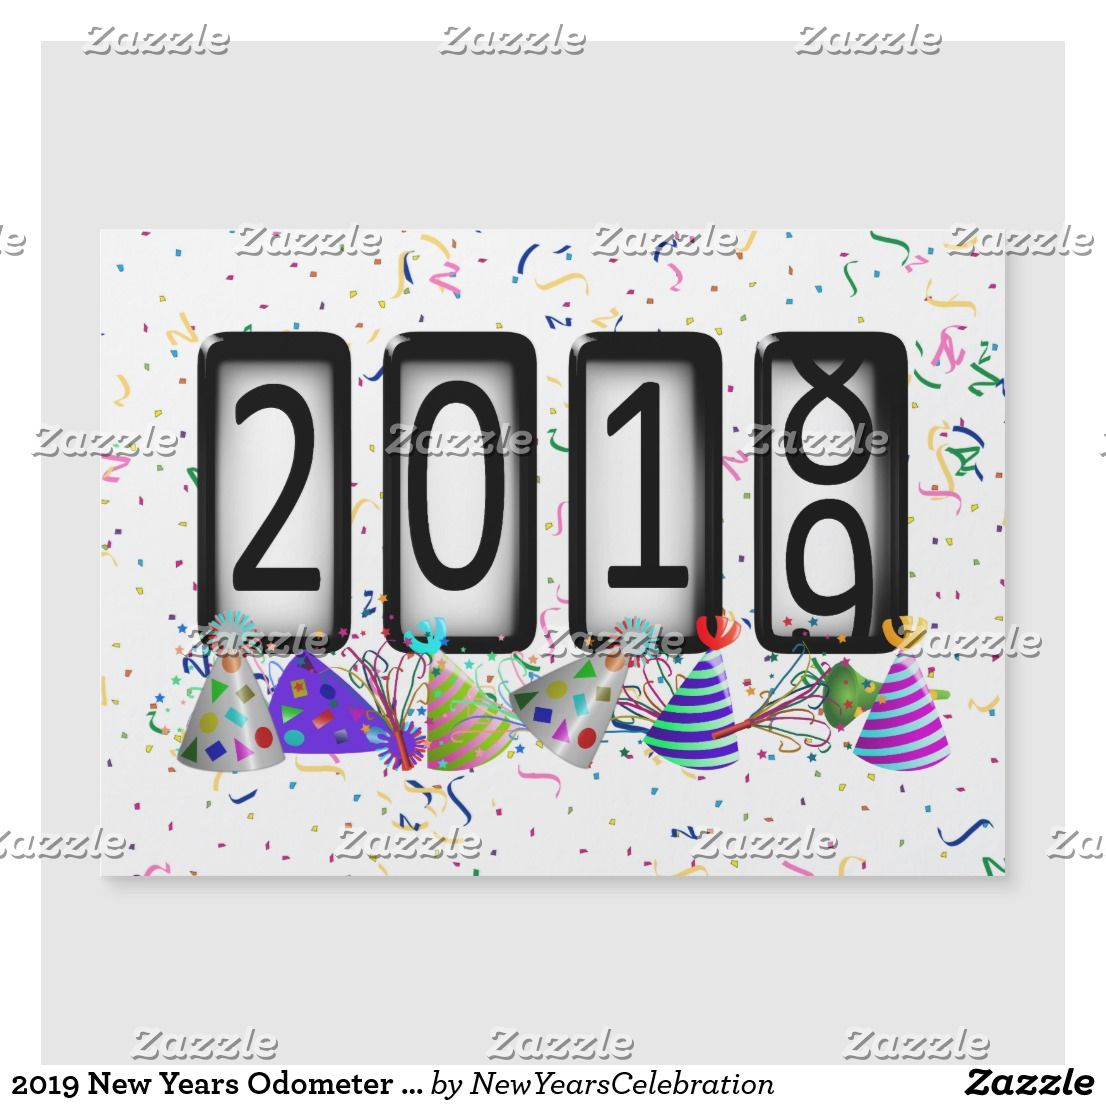 2019 New Years Odometer - Party Hats and Confetti | Holiday ...